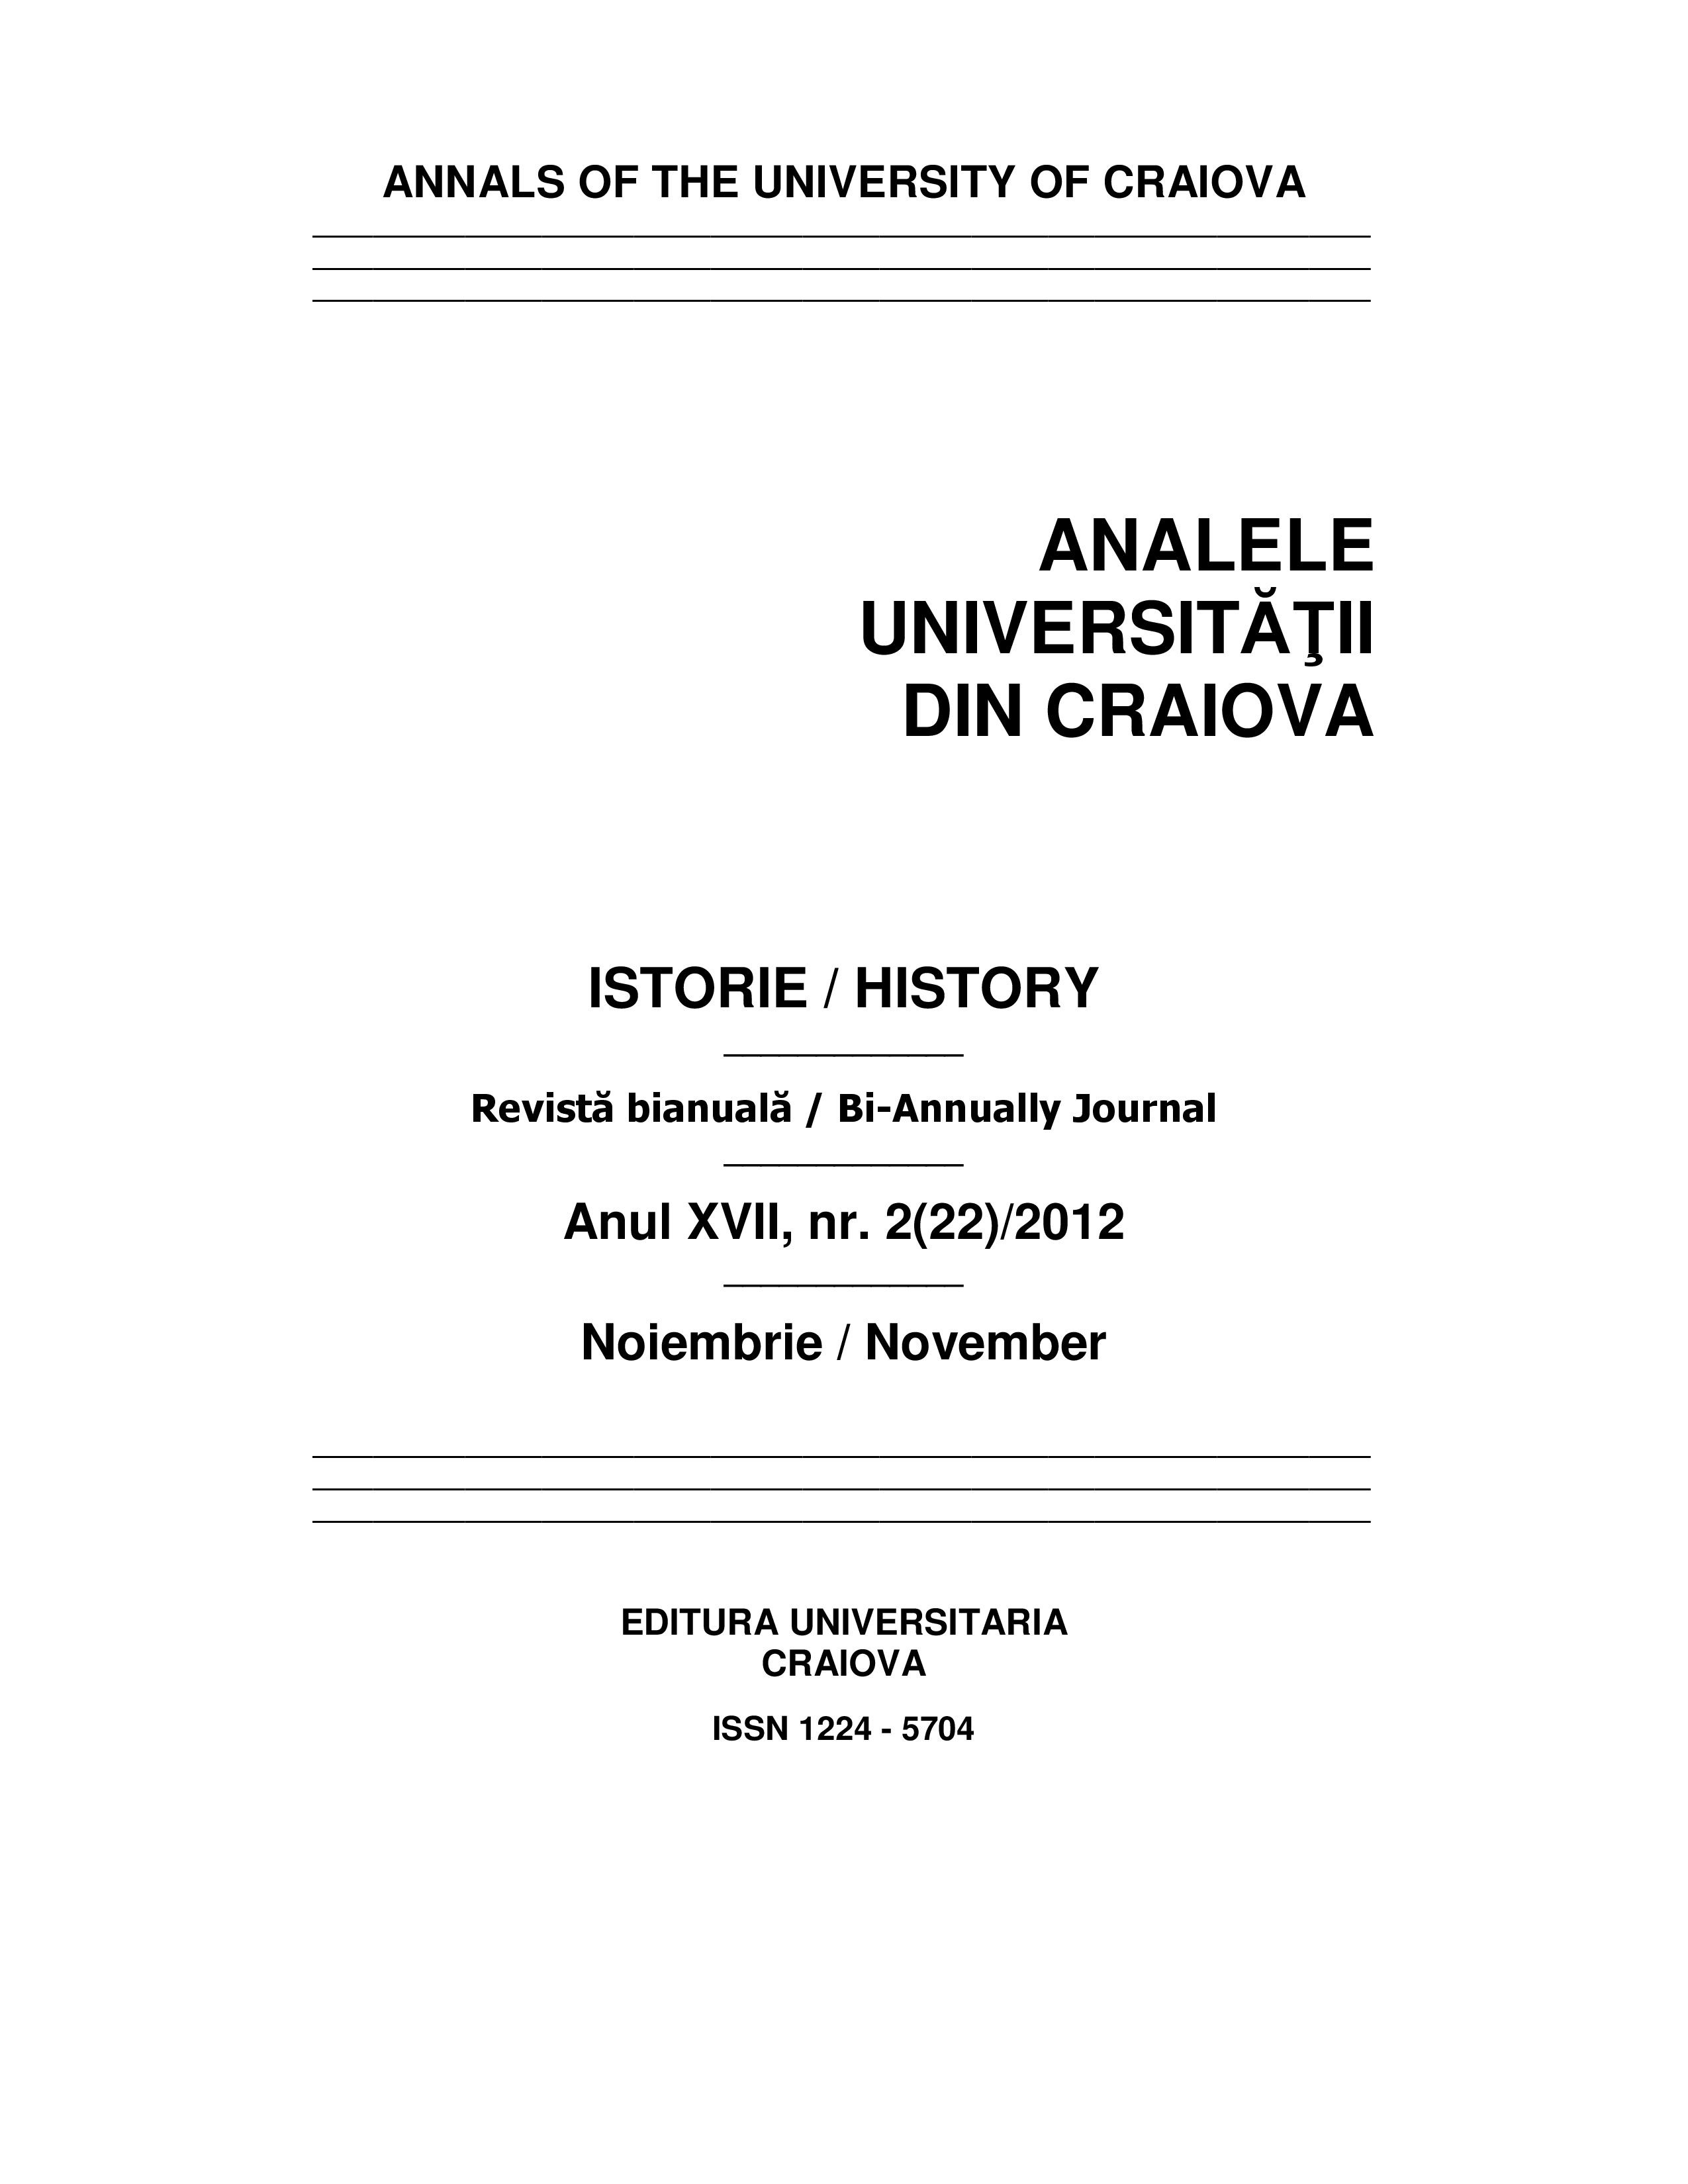 Coperta_Anale_2012_2_ISTORIE PDF-page-001